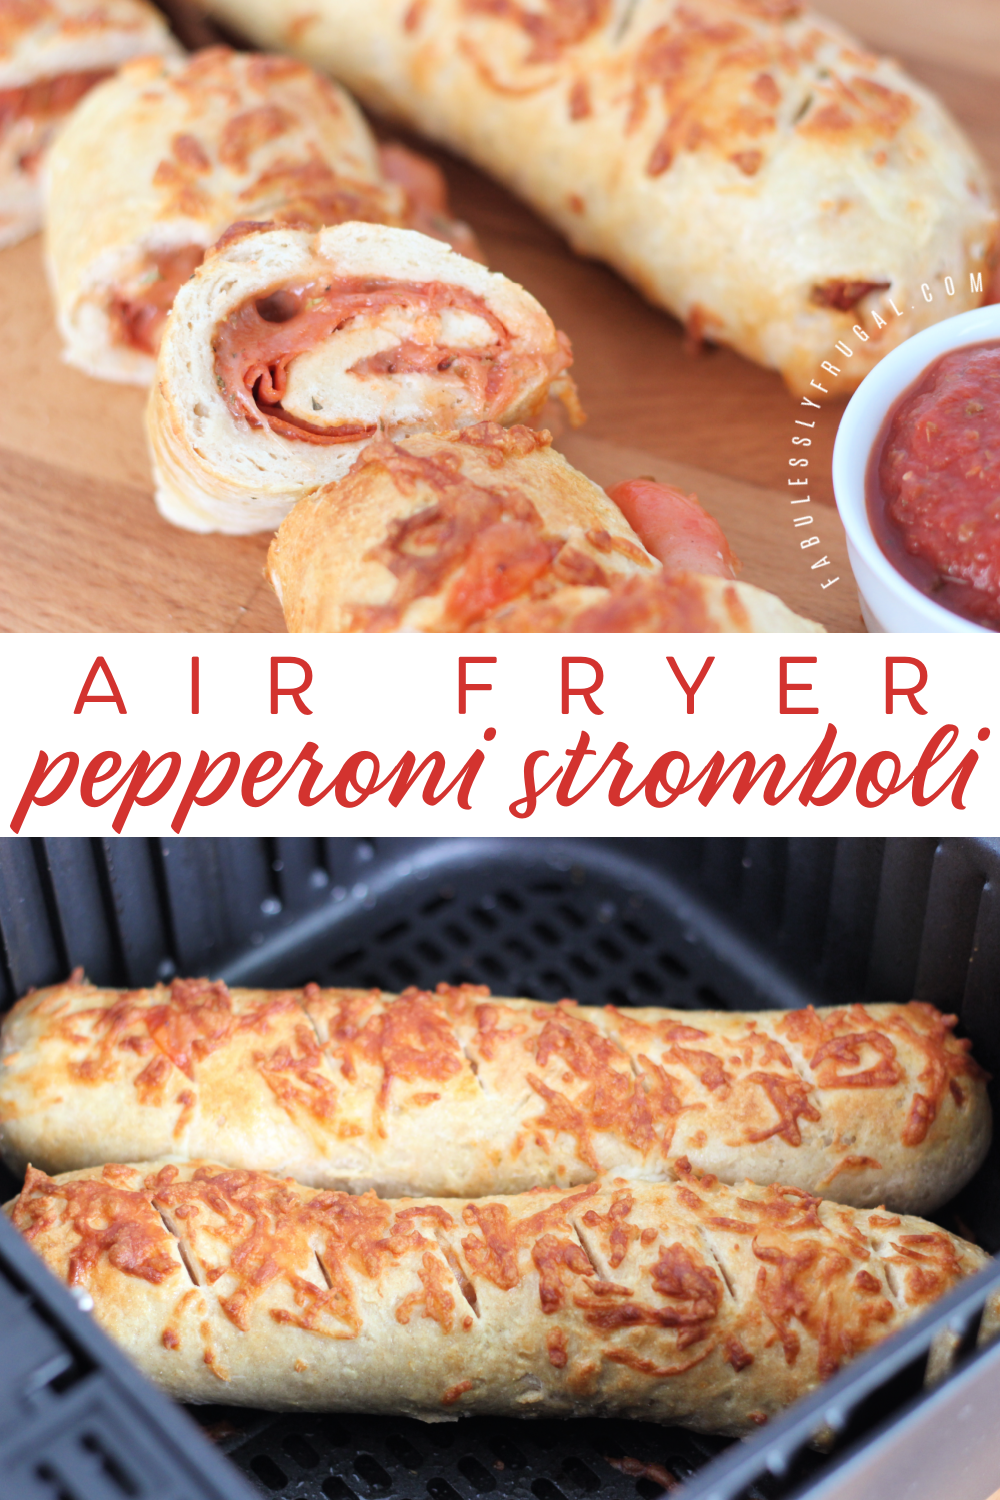 How to make air fryer stromboli